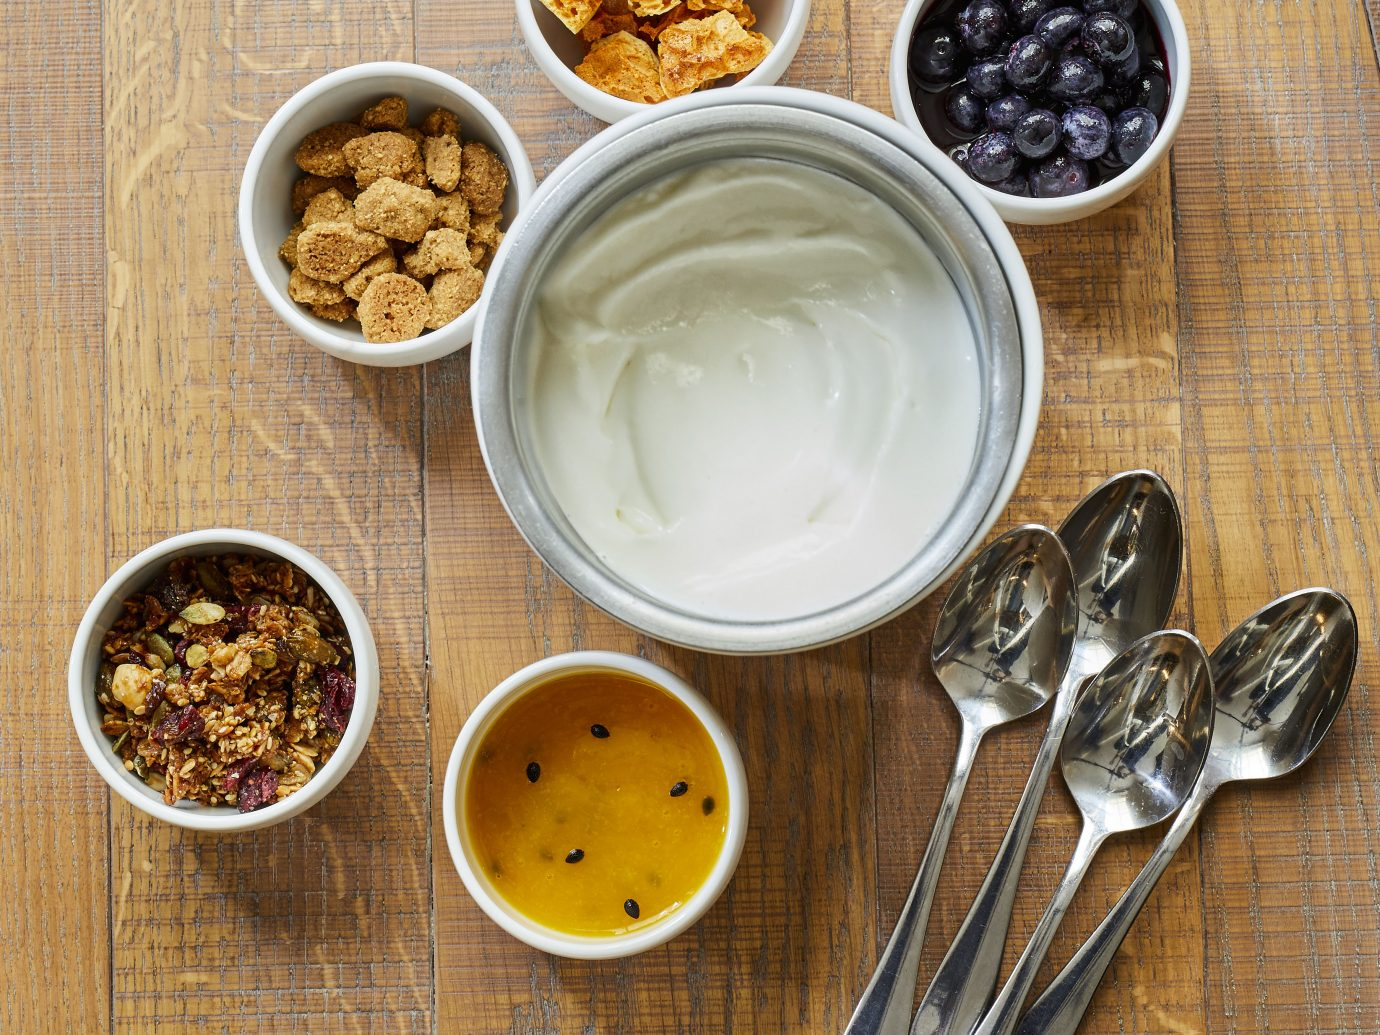 yogurt with numerous options in little bowls to put in it